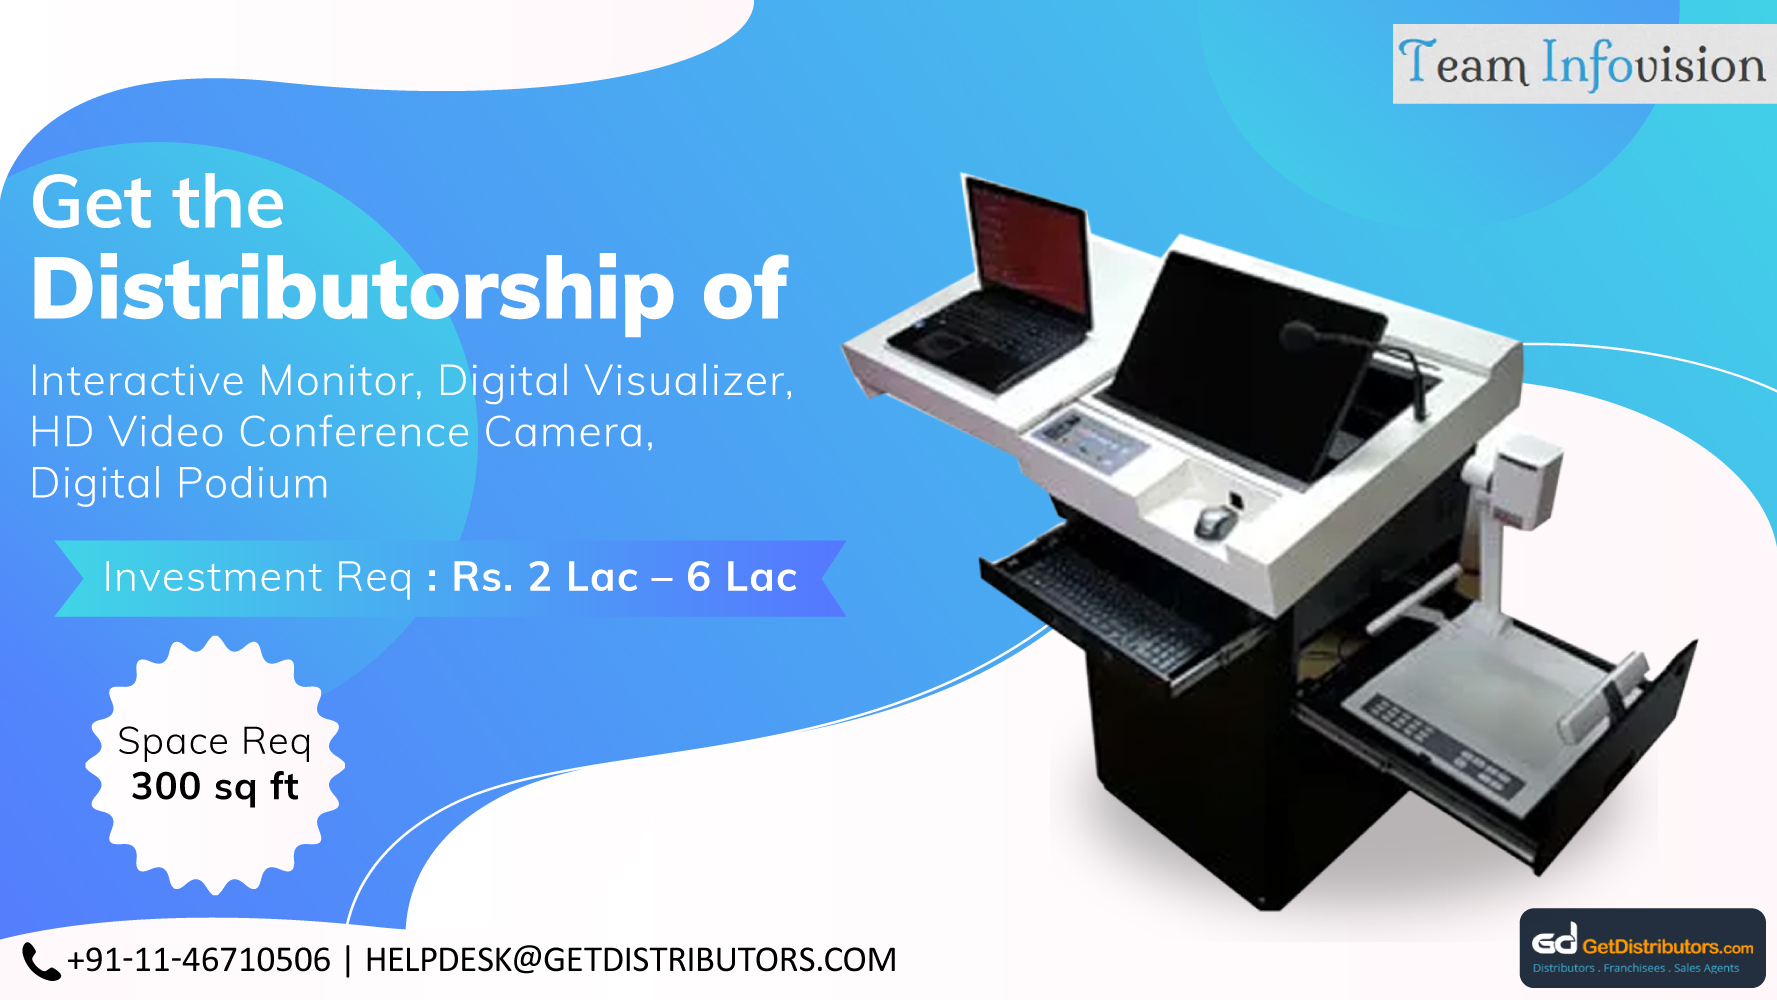 Offering A Vivid Variety Of Digital Podium, Cameras, And Interactive Monitors At Affordable Rates